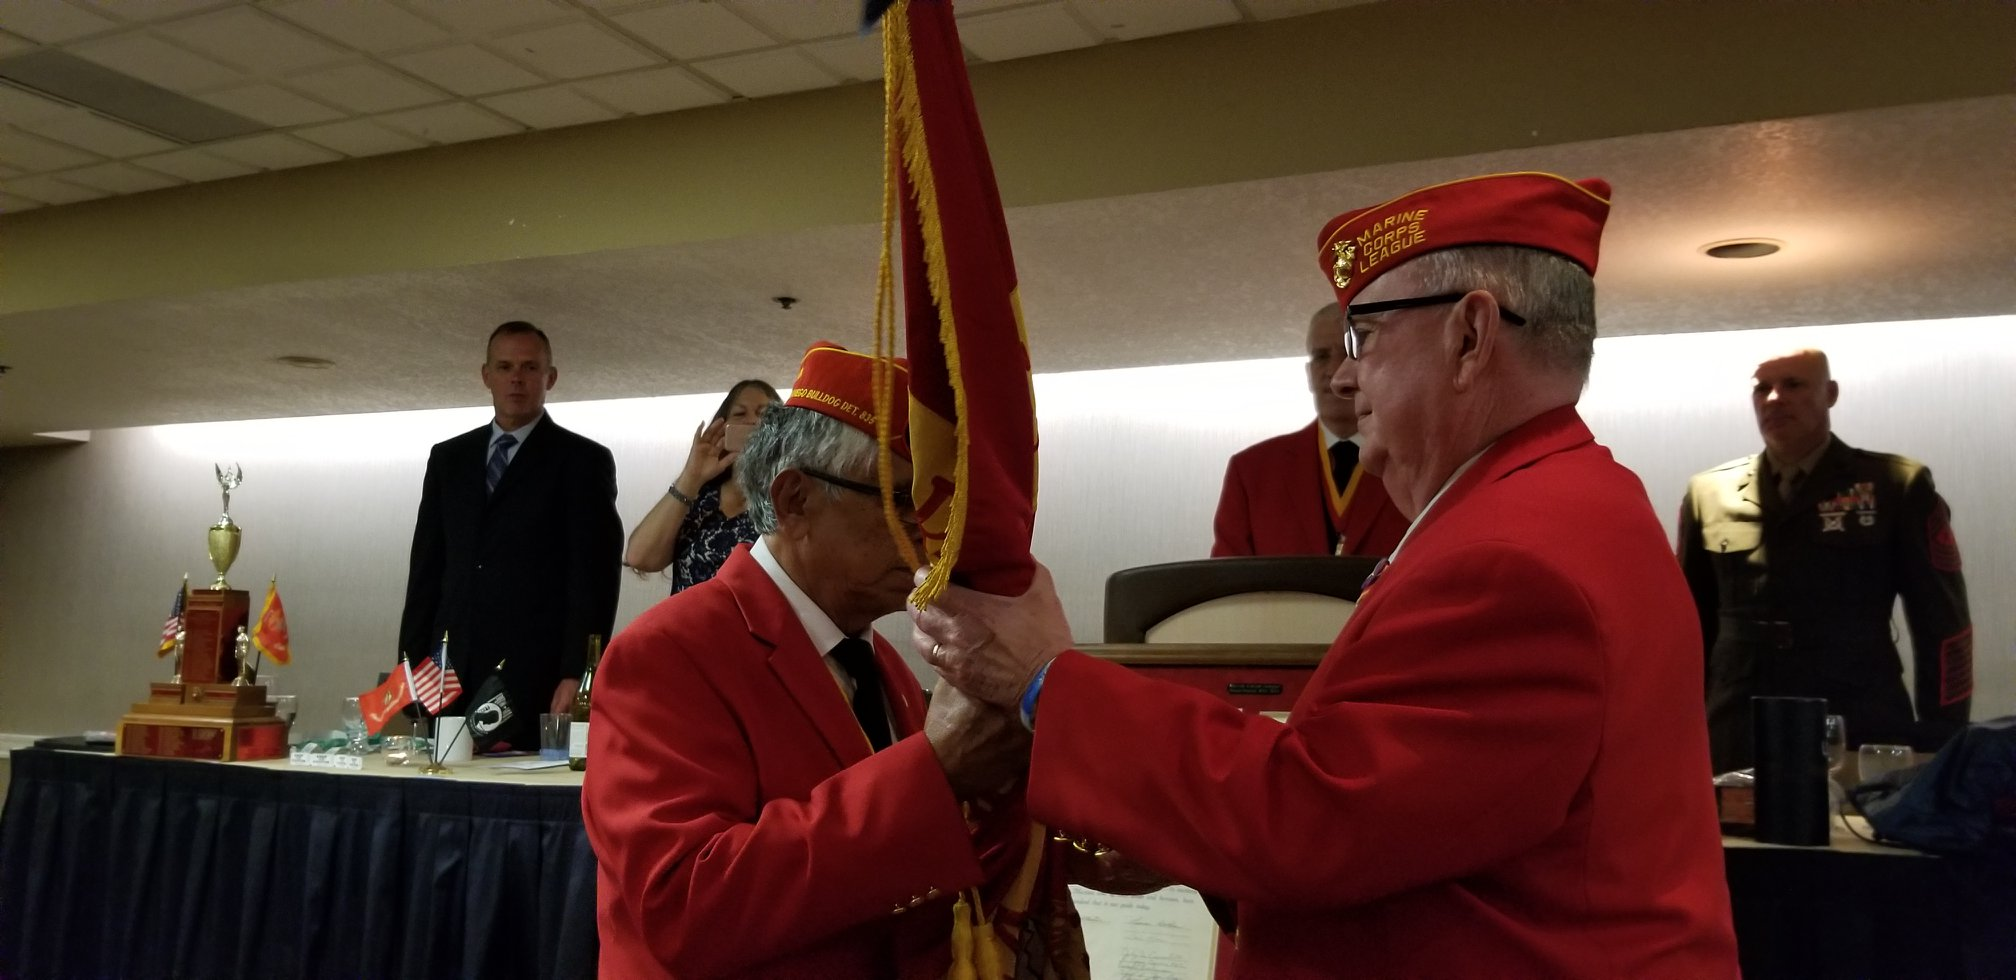 June 8, 2019   Change of Command Ceremony at the Marine Corps League Department of California 87th State Convention in San Diego on the 8th of June. On the left is outgoing State Commandant Ray Valenzuela and on the right is incoming State Commandant from Simi Valley, Dick Jennings